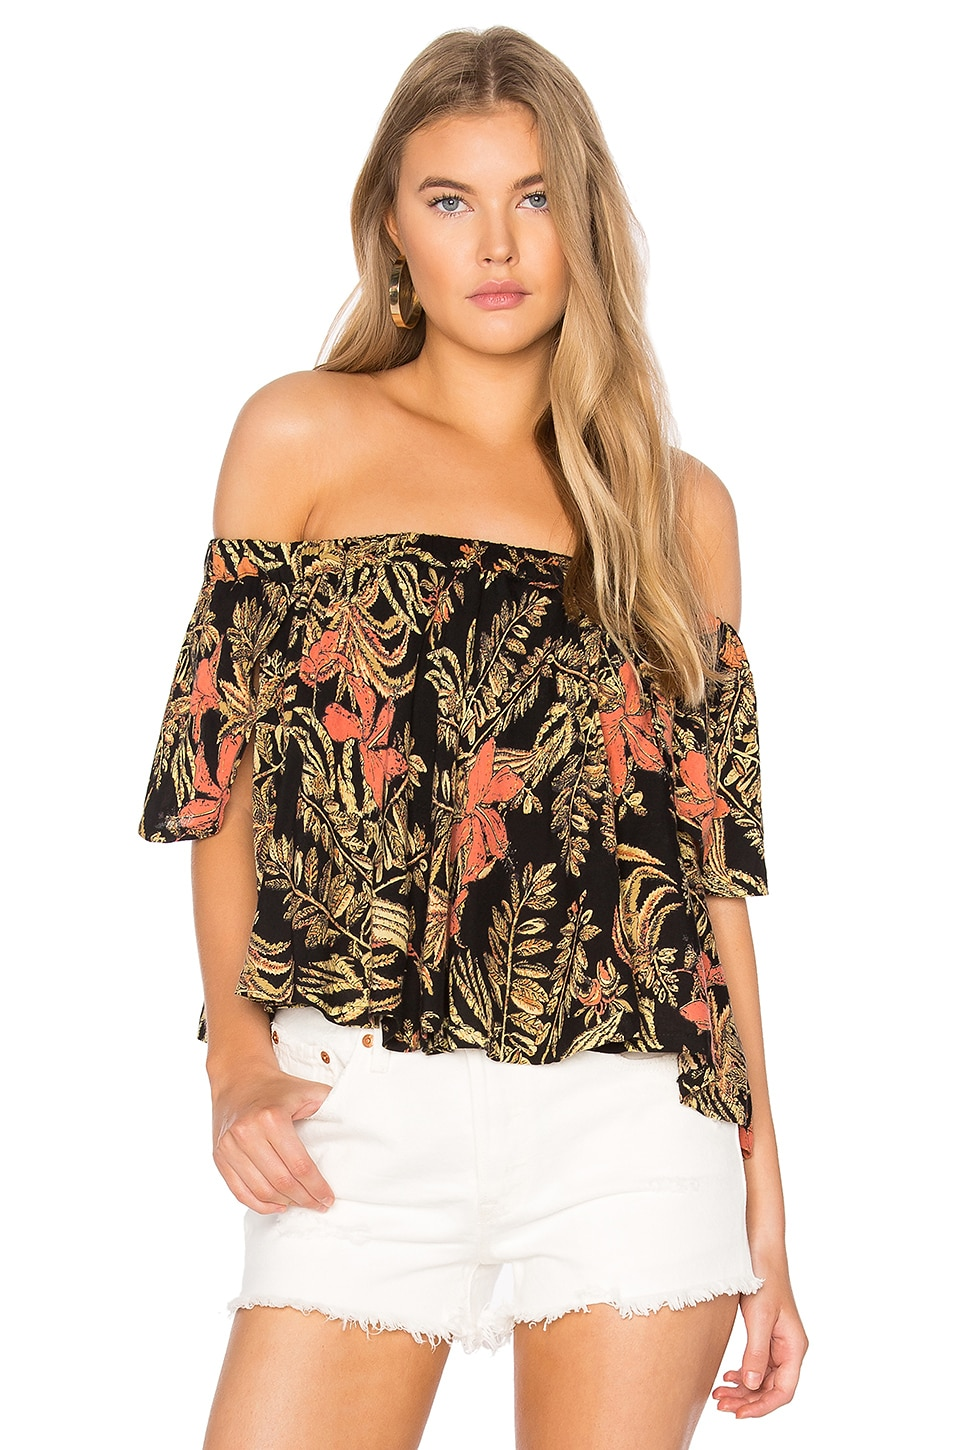 Island Fever Crop Top by Raga